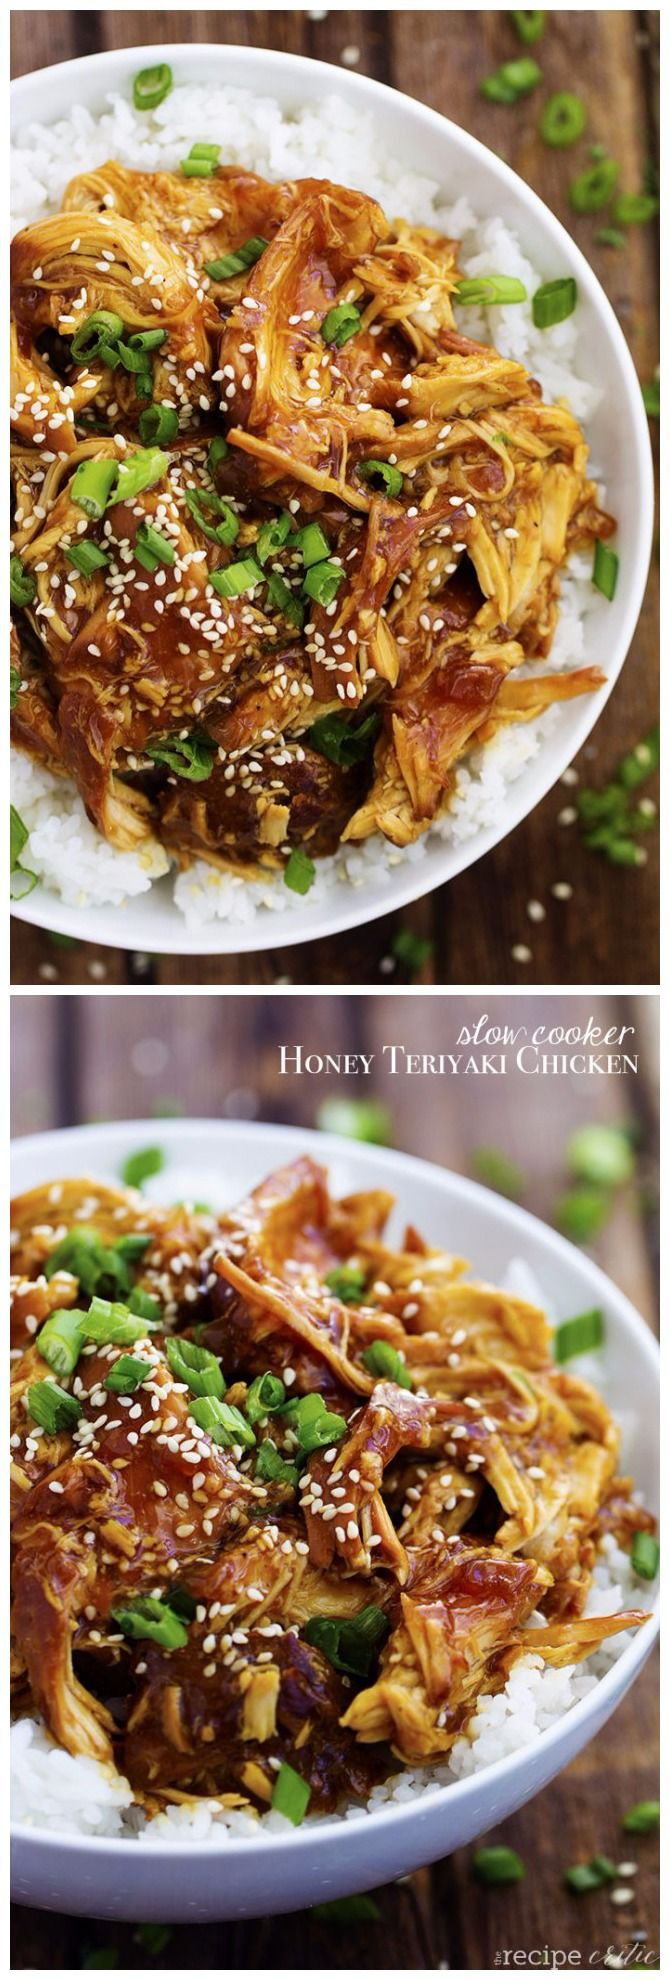 Slow Cooker Honey Teriyaki Chicken INGREDIENTS 4 boneless chicken breasts, about 2 pounds ½ cup soy sauce ½ cup honey ¼ cup rice wine vinegar ¼ cup onion, chopped 2 garlic cloves, minced ¼ teaspoon…